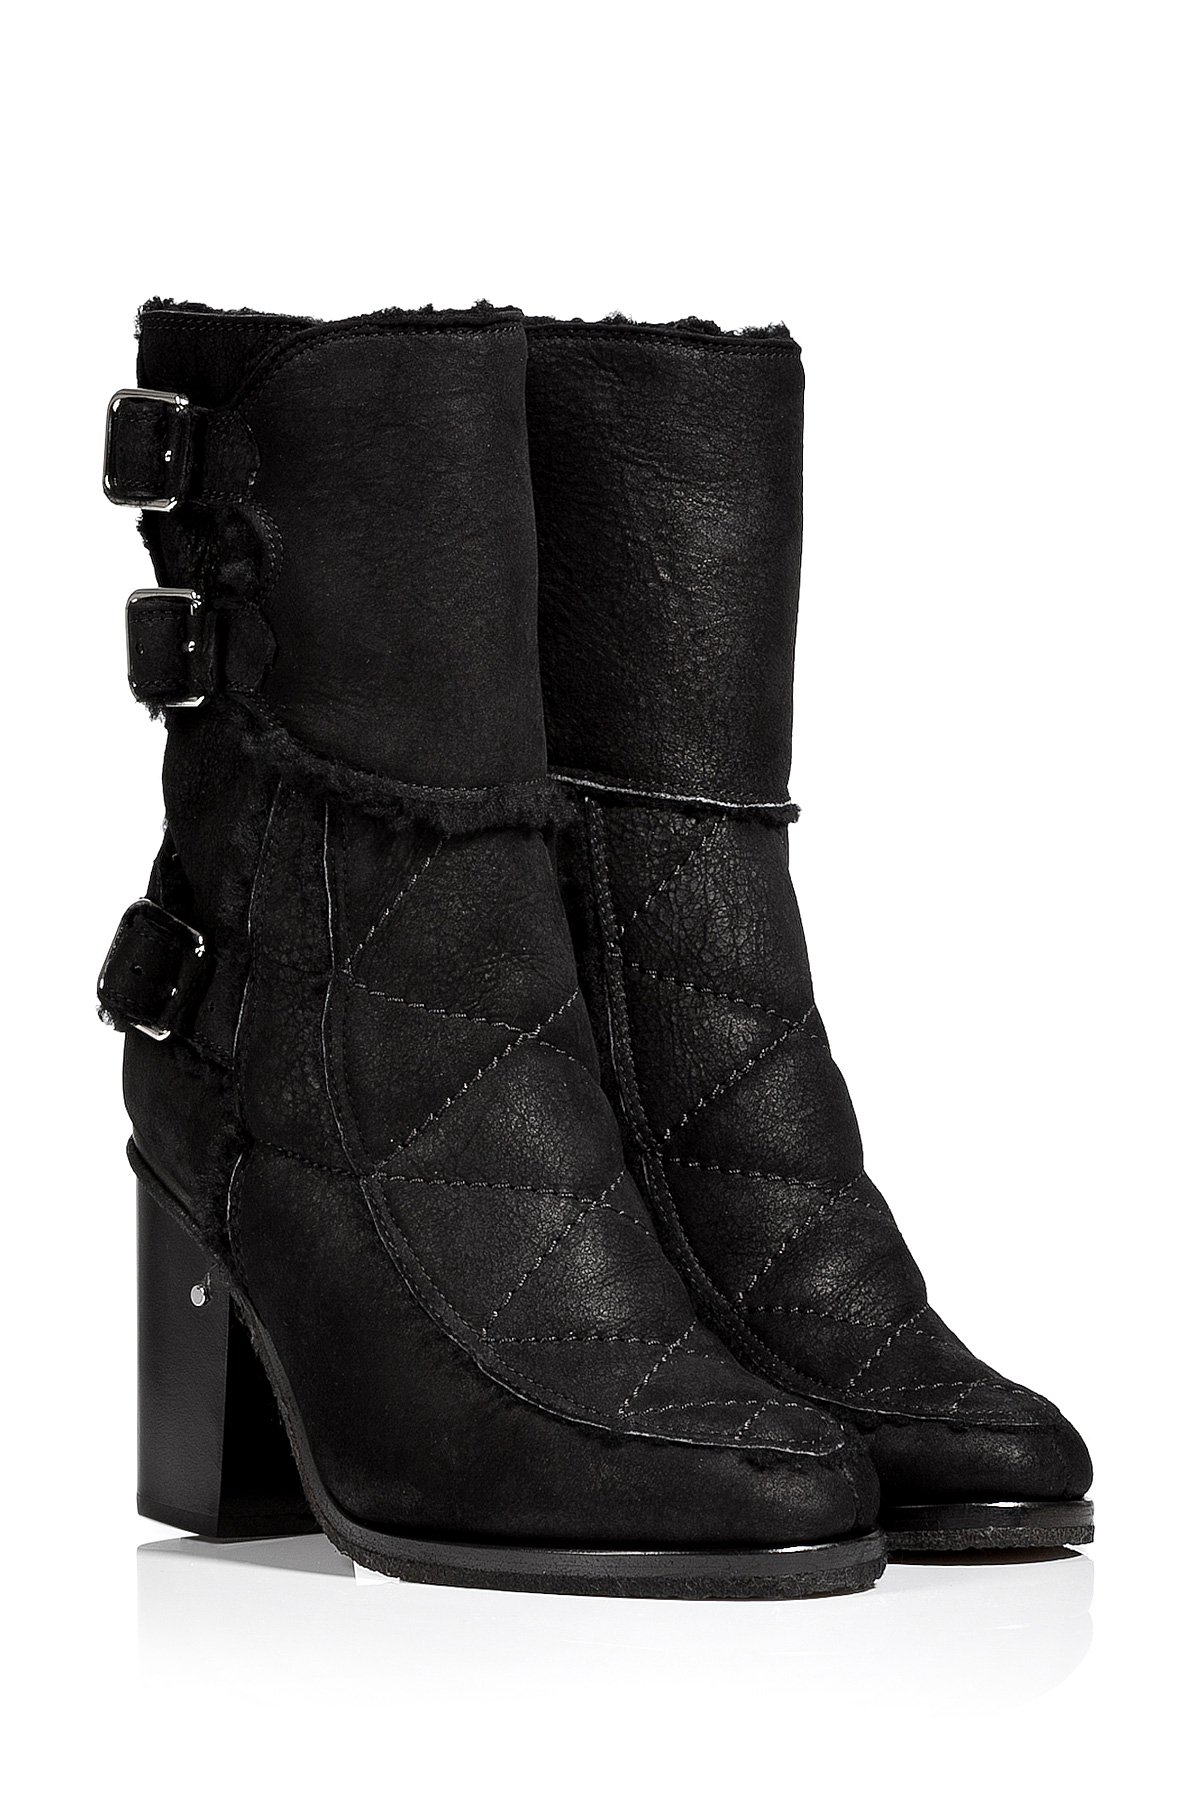 laurence dacade shearling lined ankle boots black in